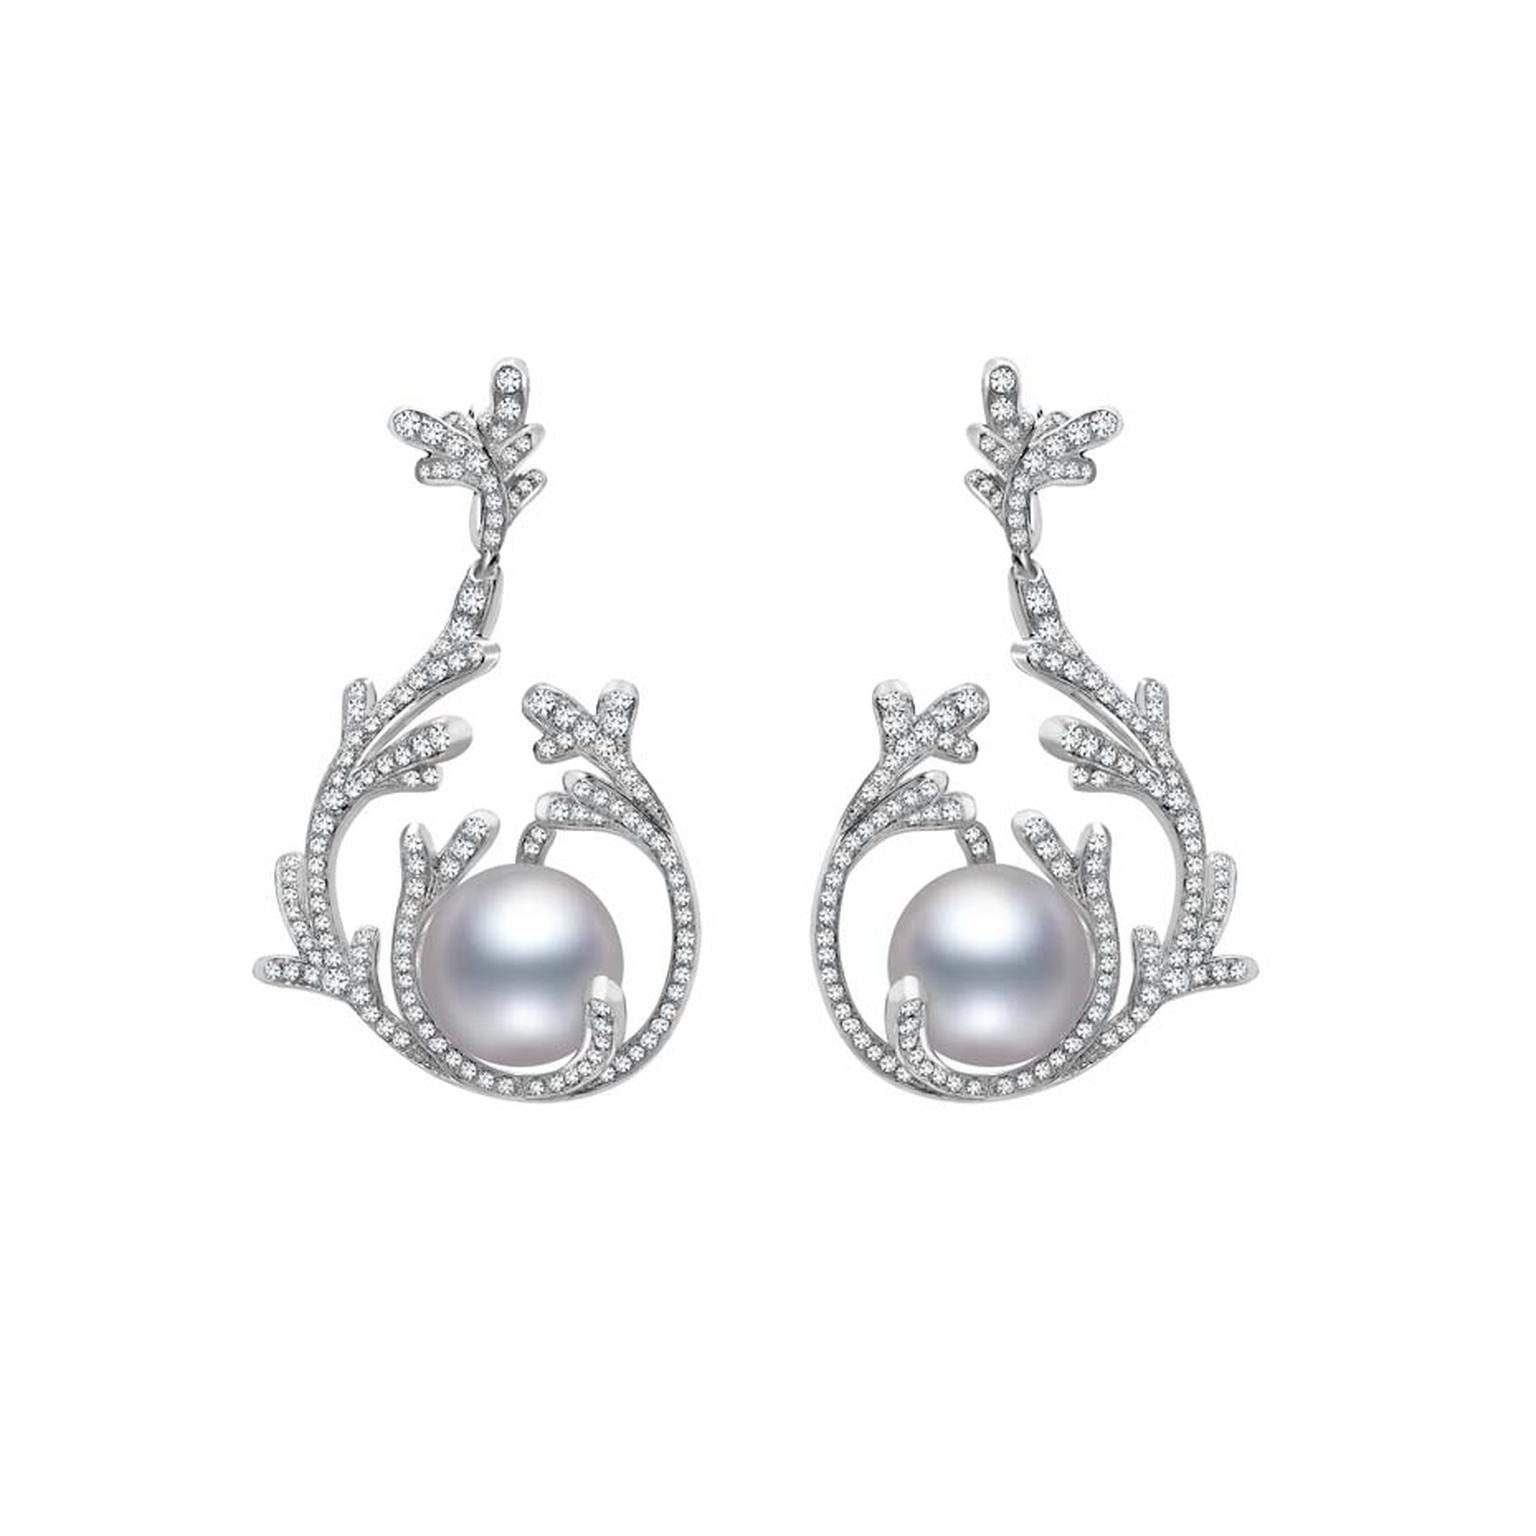 Mikimoto Regalia Collection Coral earrings featuring South Sea baroque pearls and diamonds in white gold, designed to mimic the antler-like branches of coral